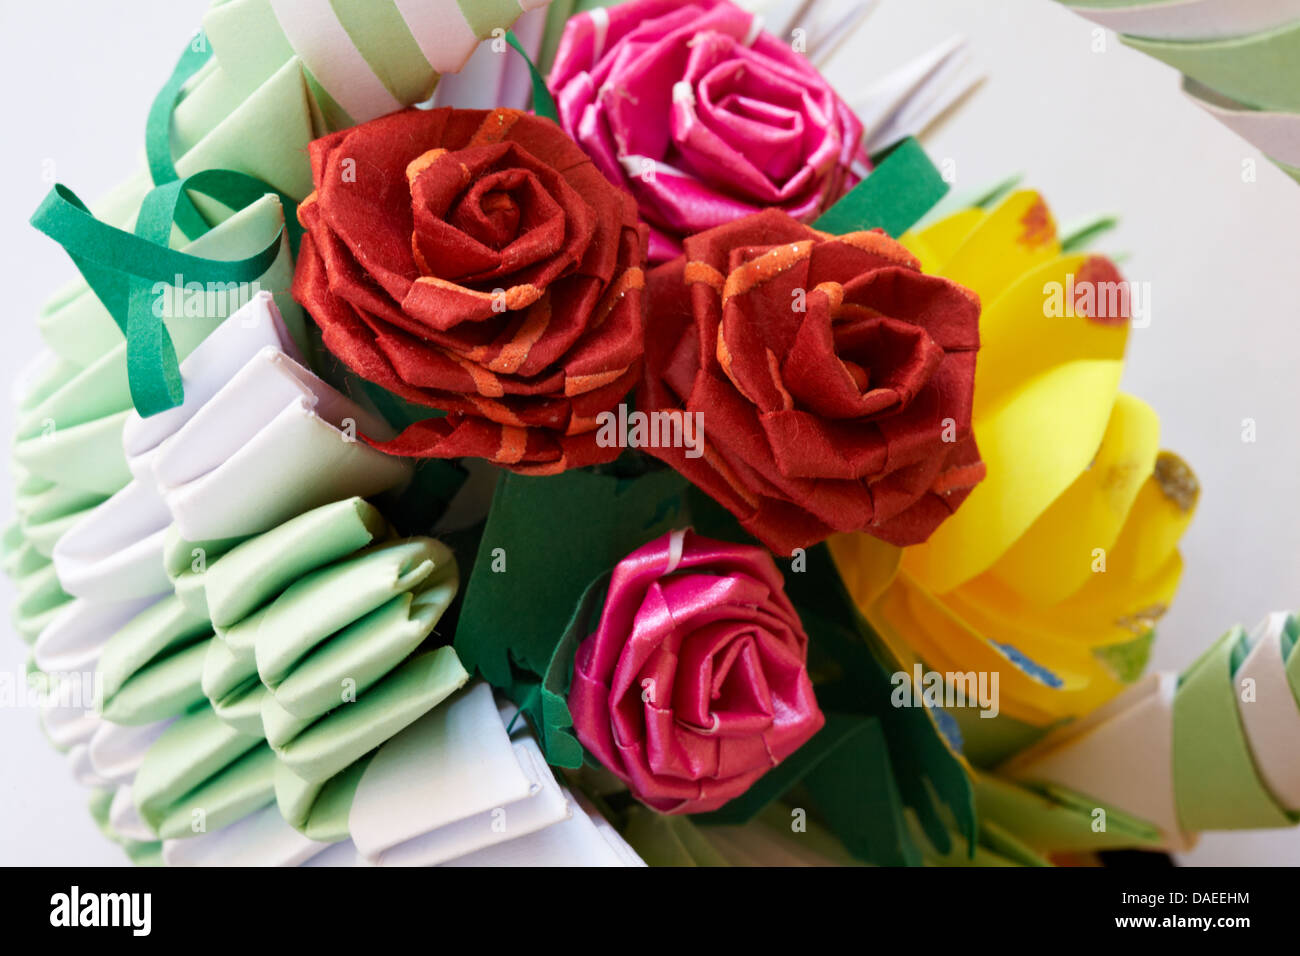 Origami Basket Stock Photos Origami Basket Stock Images Alamy